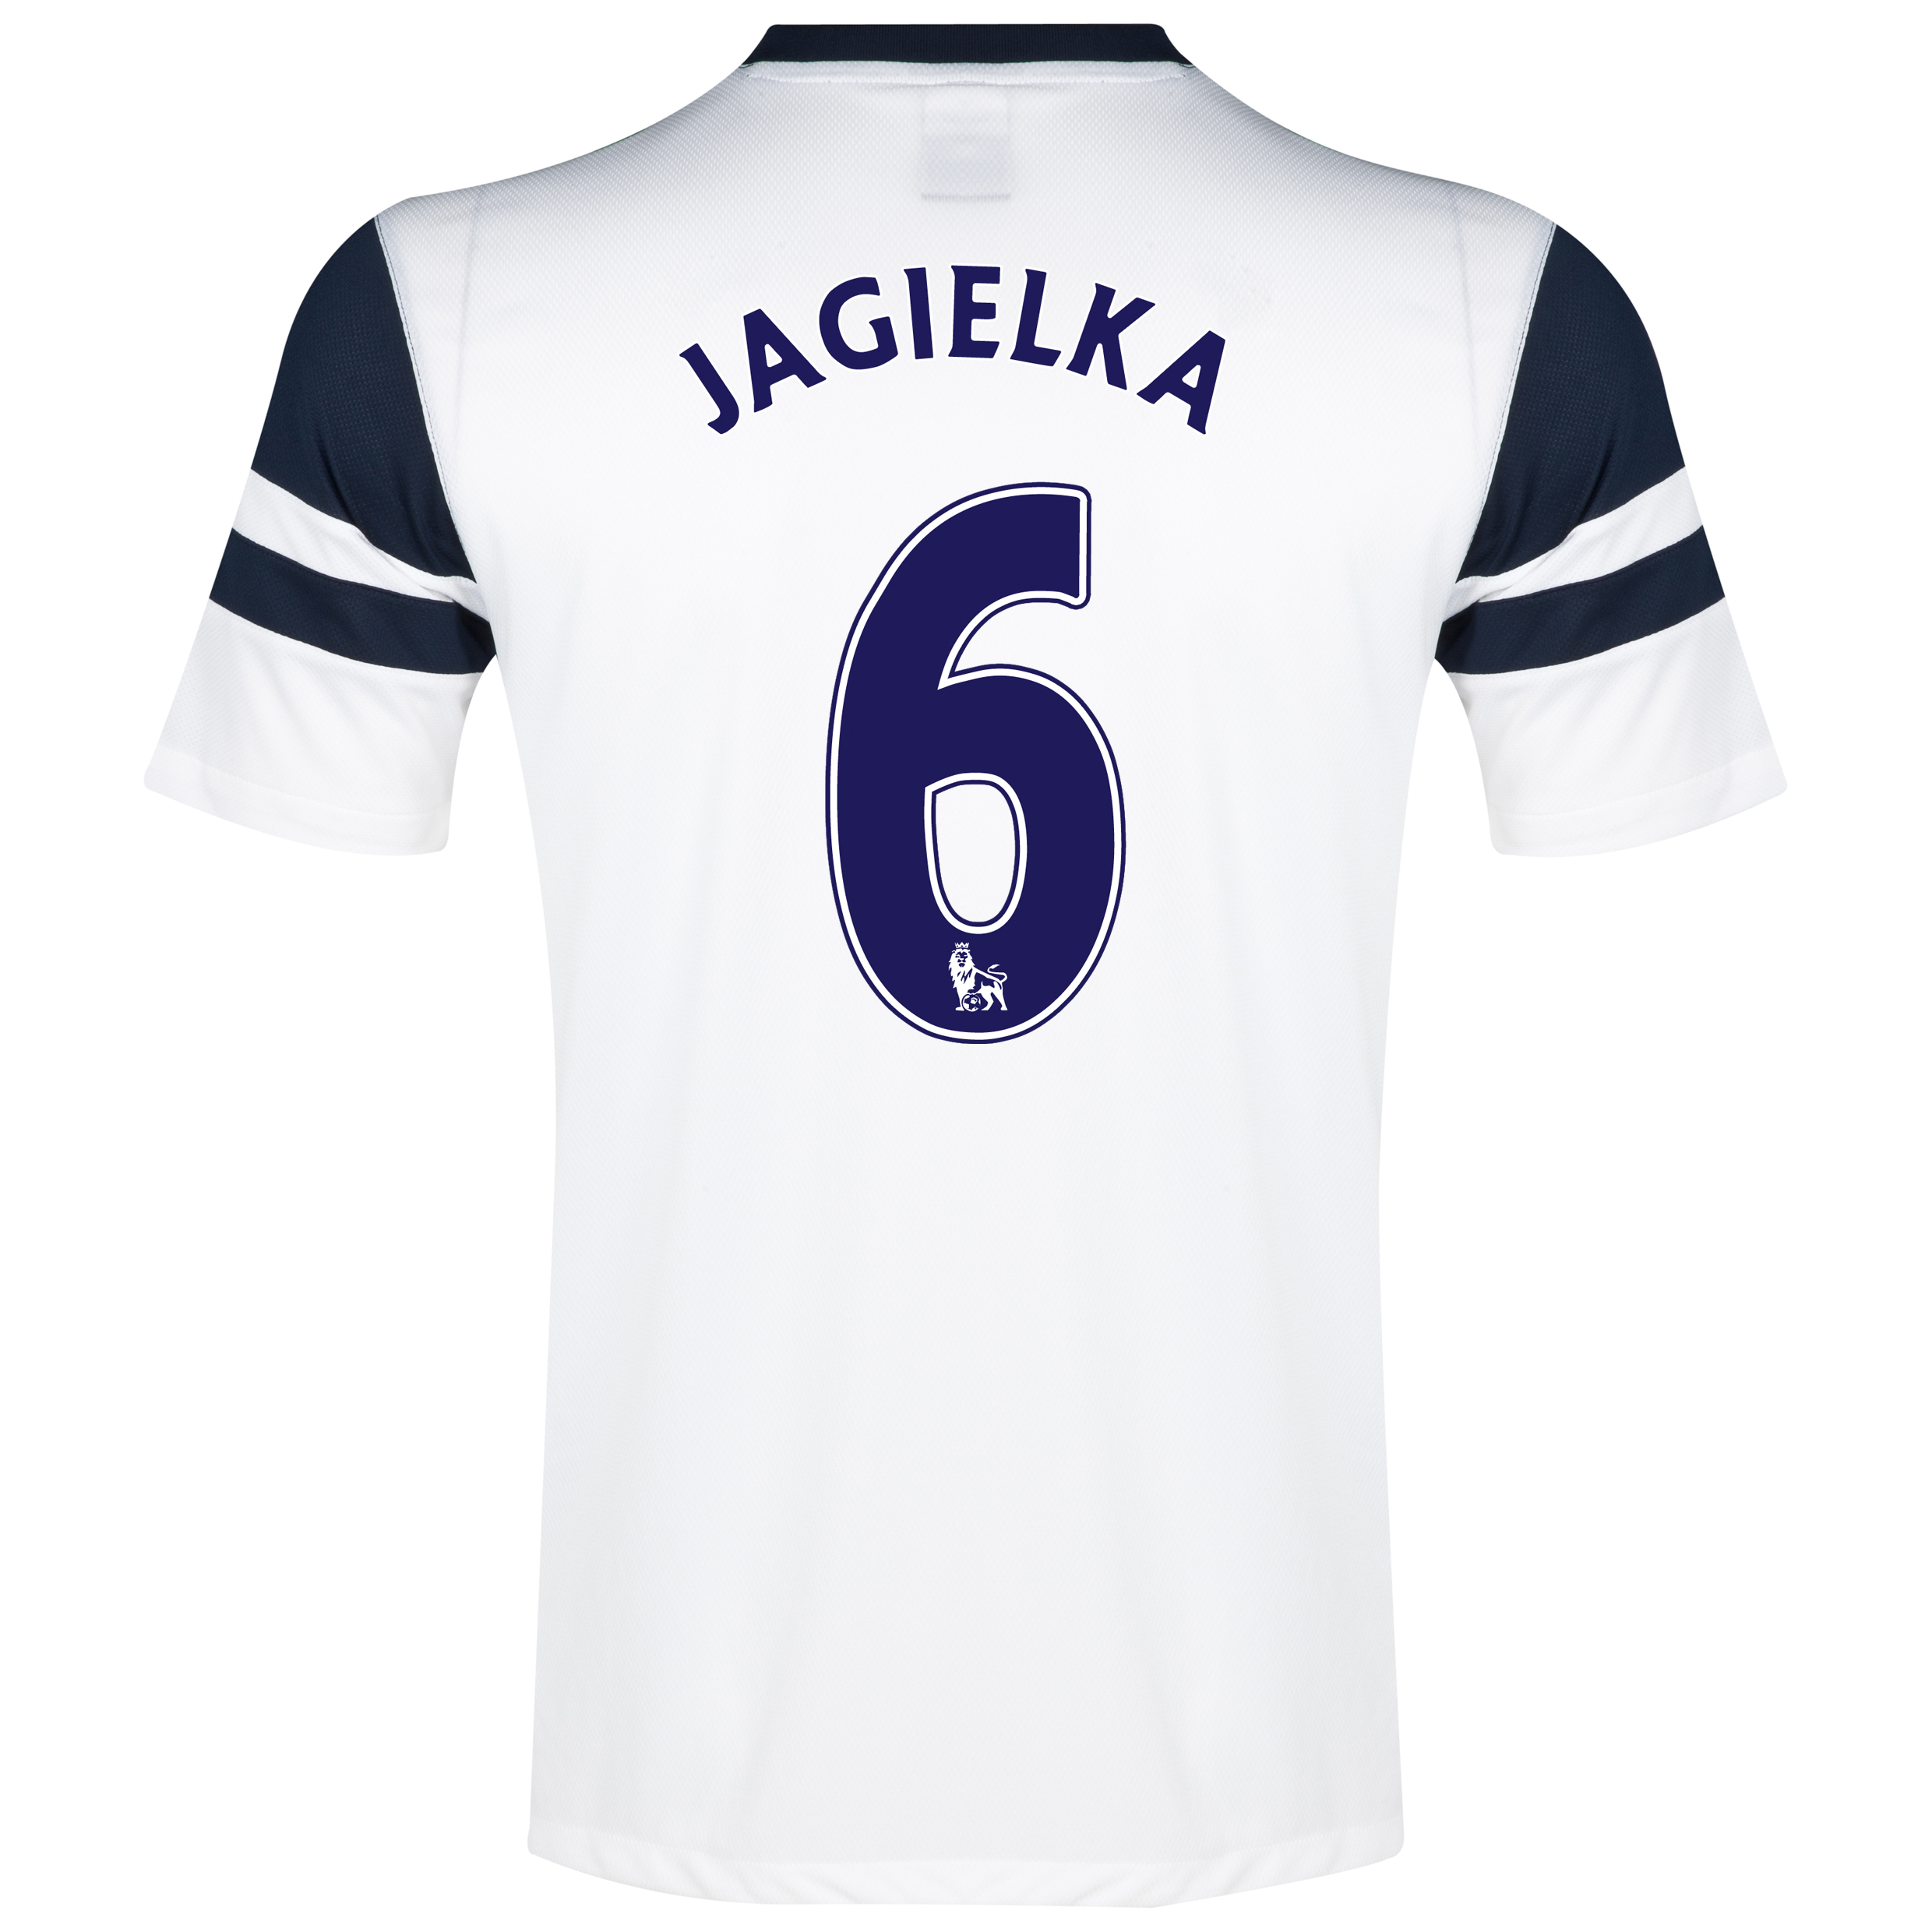 Everton 3rd Shirt 2013/14 White with Jagielka 6 printing